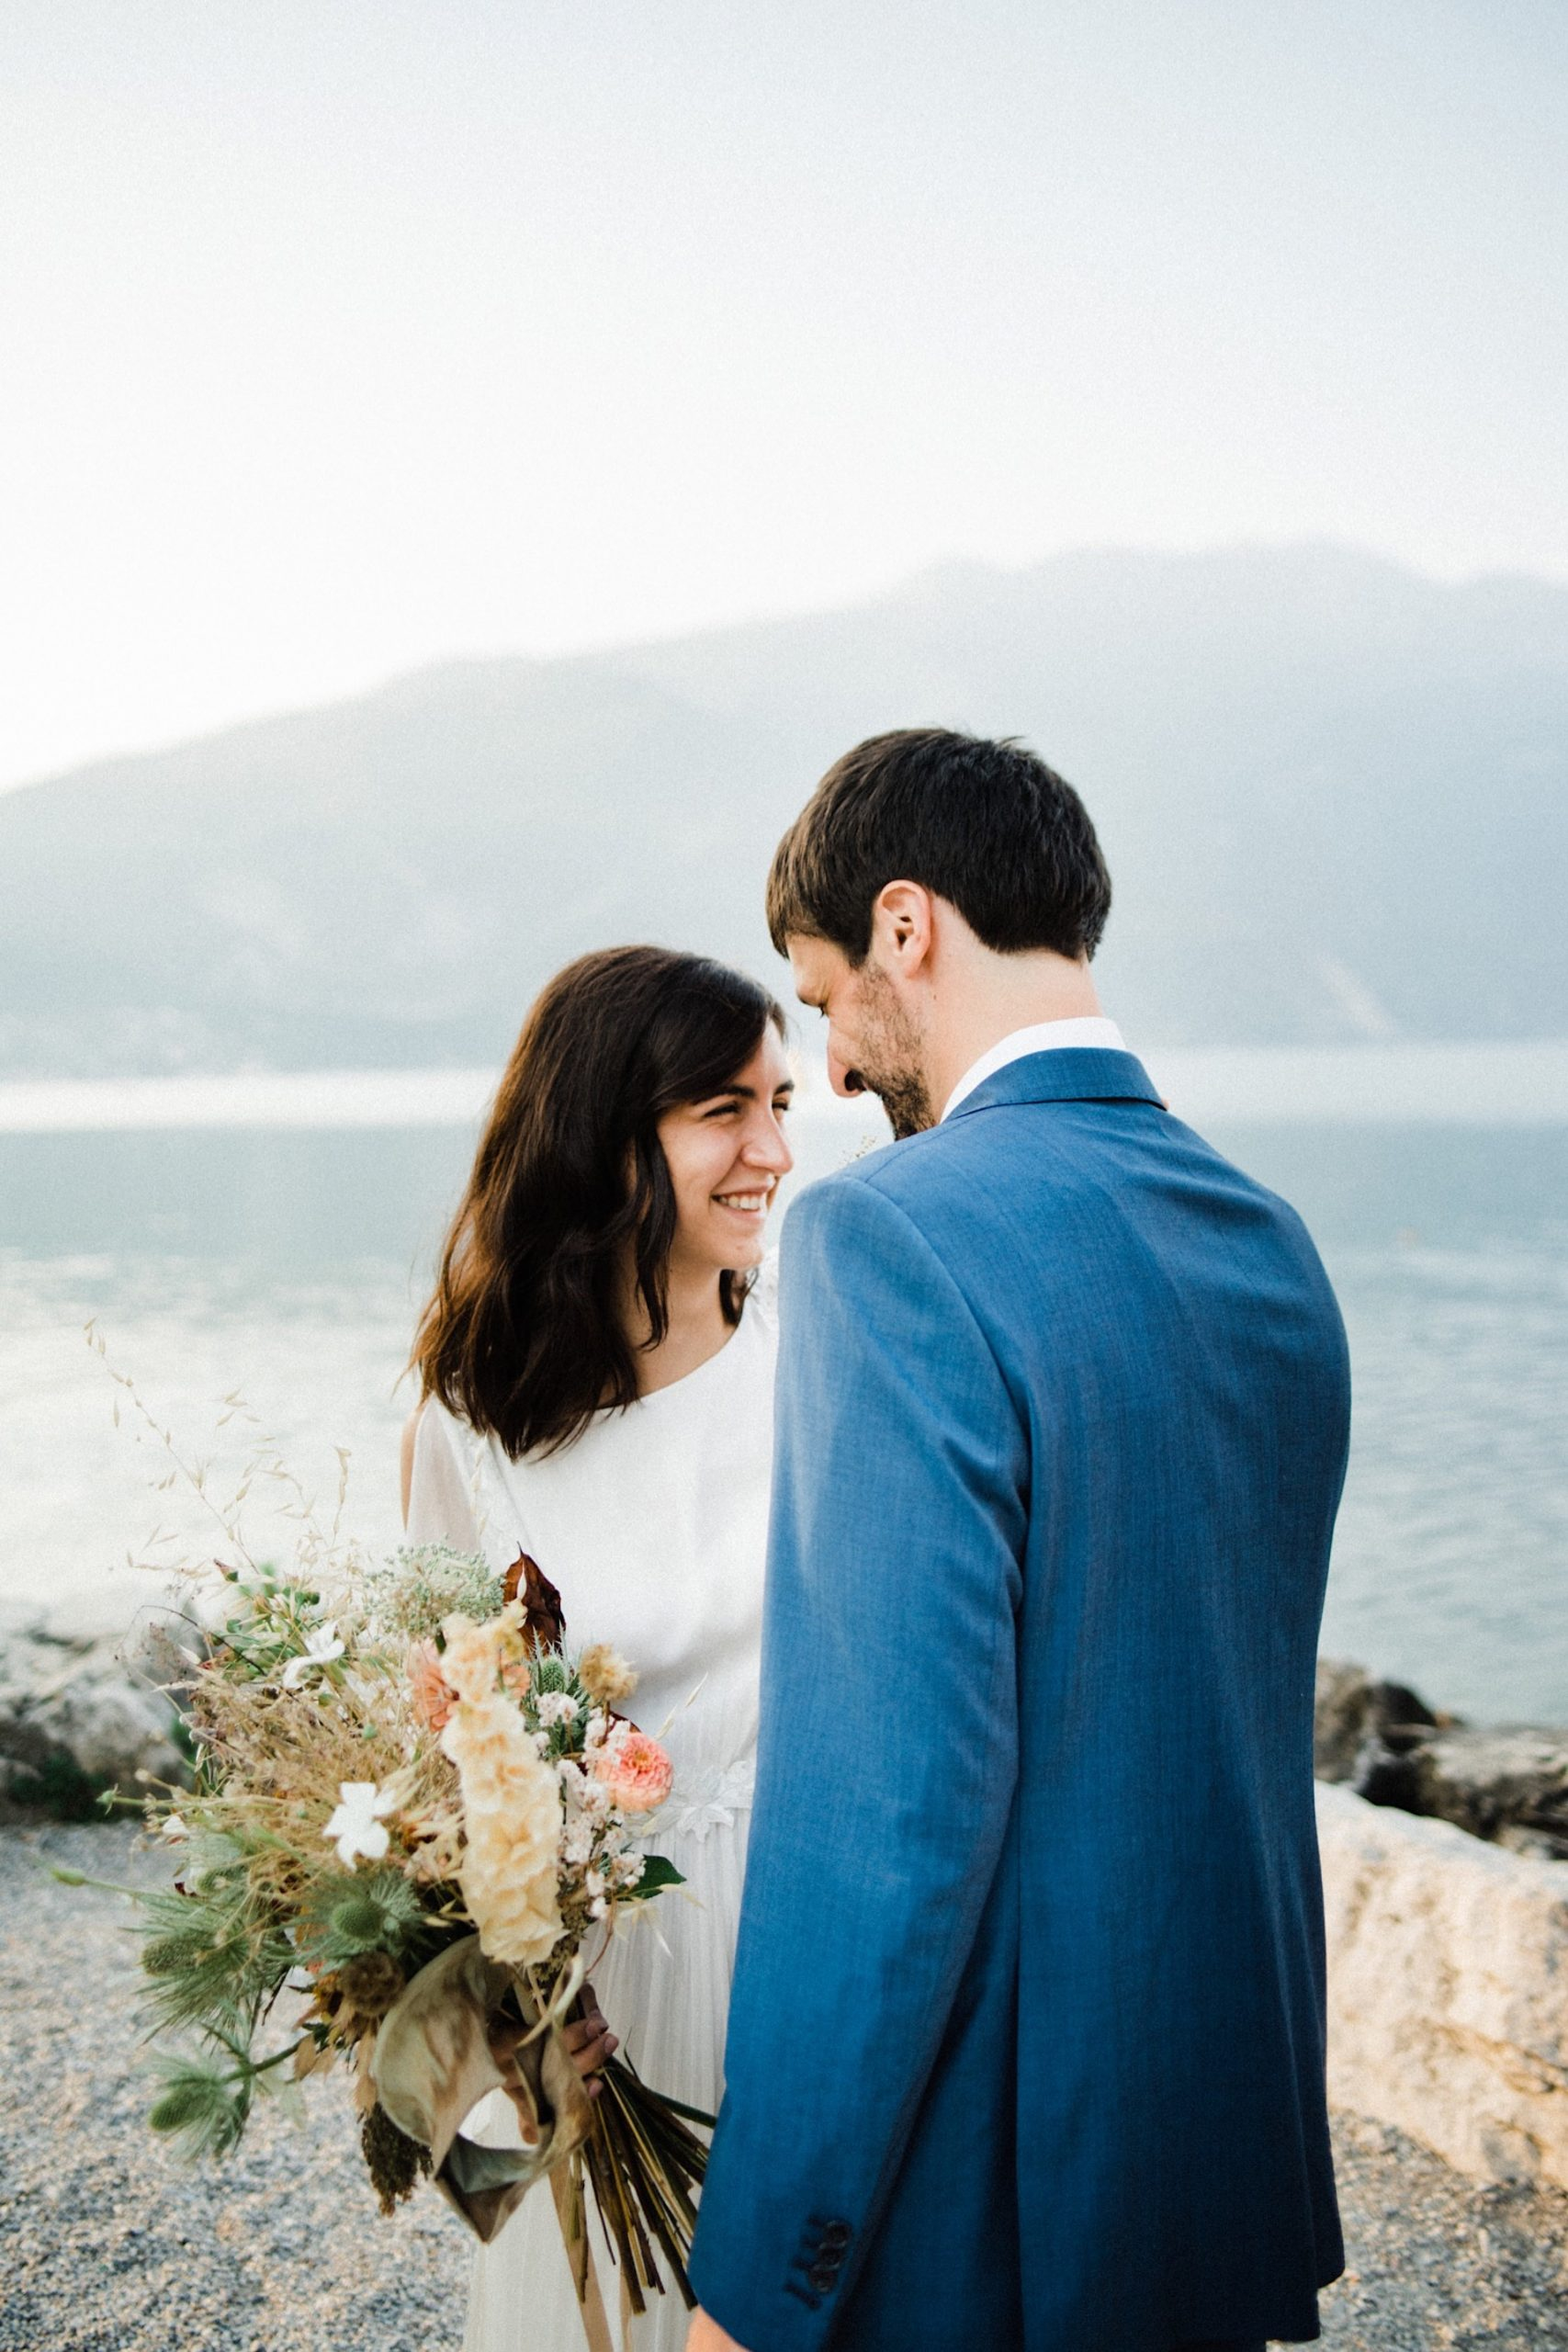 Portrait photo from a Boho Summer Elopement in Italy, featuring a mid-shot of a couple in sustainable wedding clothes smiling in front of Lake Garda.